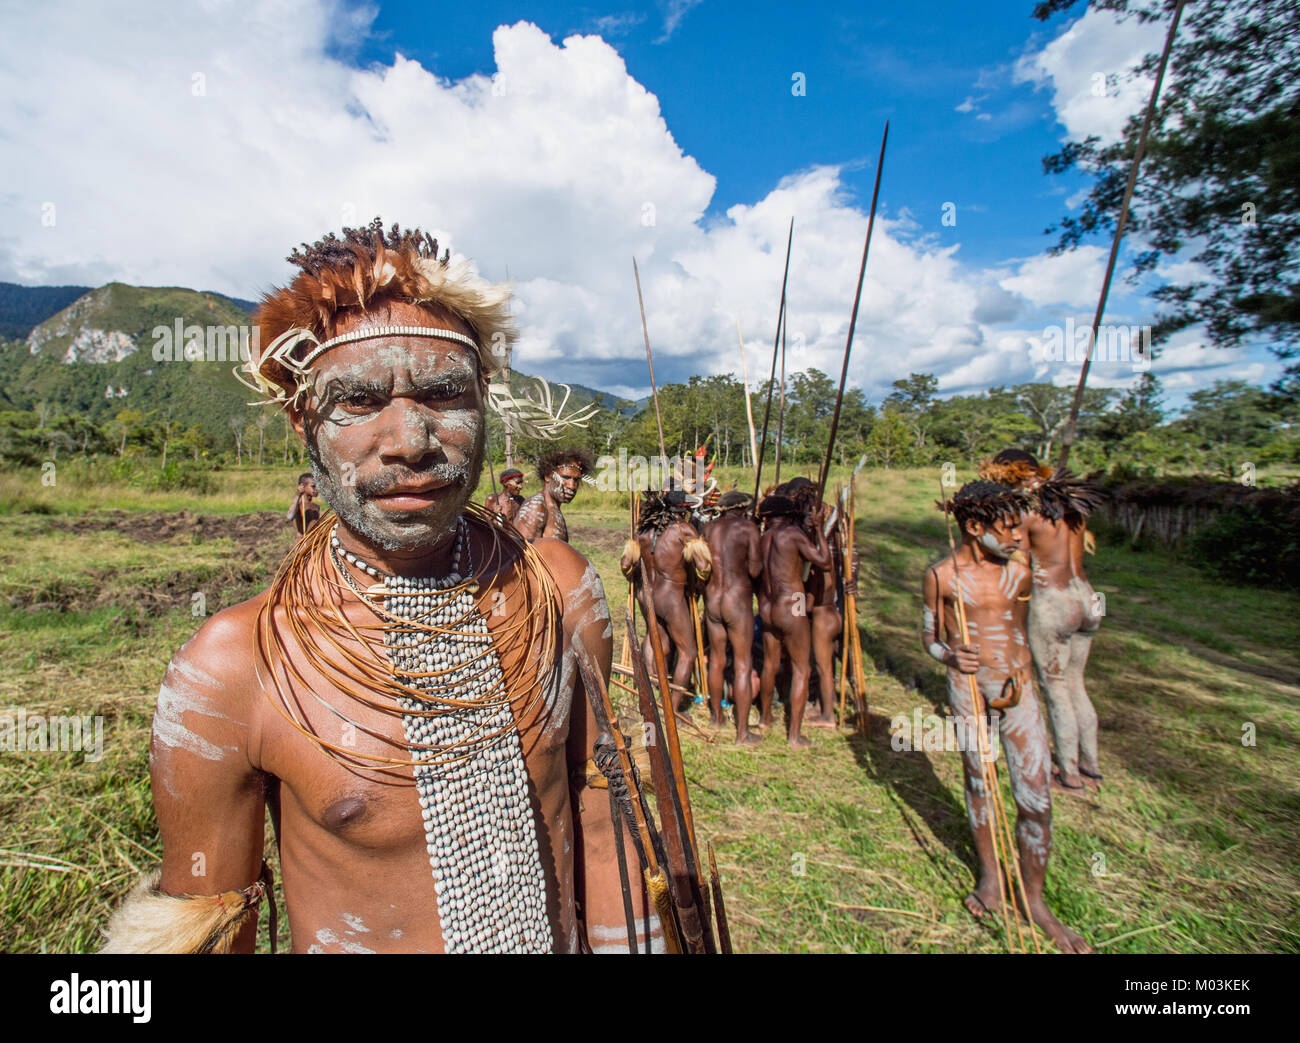 Close up Portrait of Dugum Dani Warrior Portrait. June 4, 2016 The Baliem Valley Papua or Irian Jaya Indonesian - Stock Image